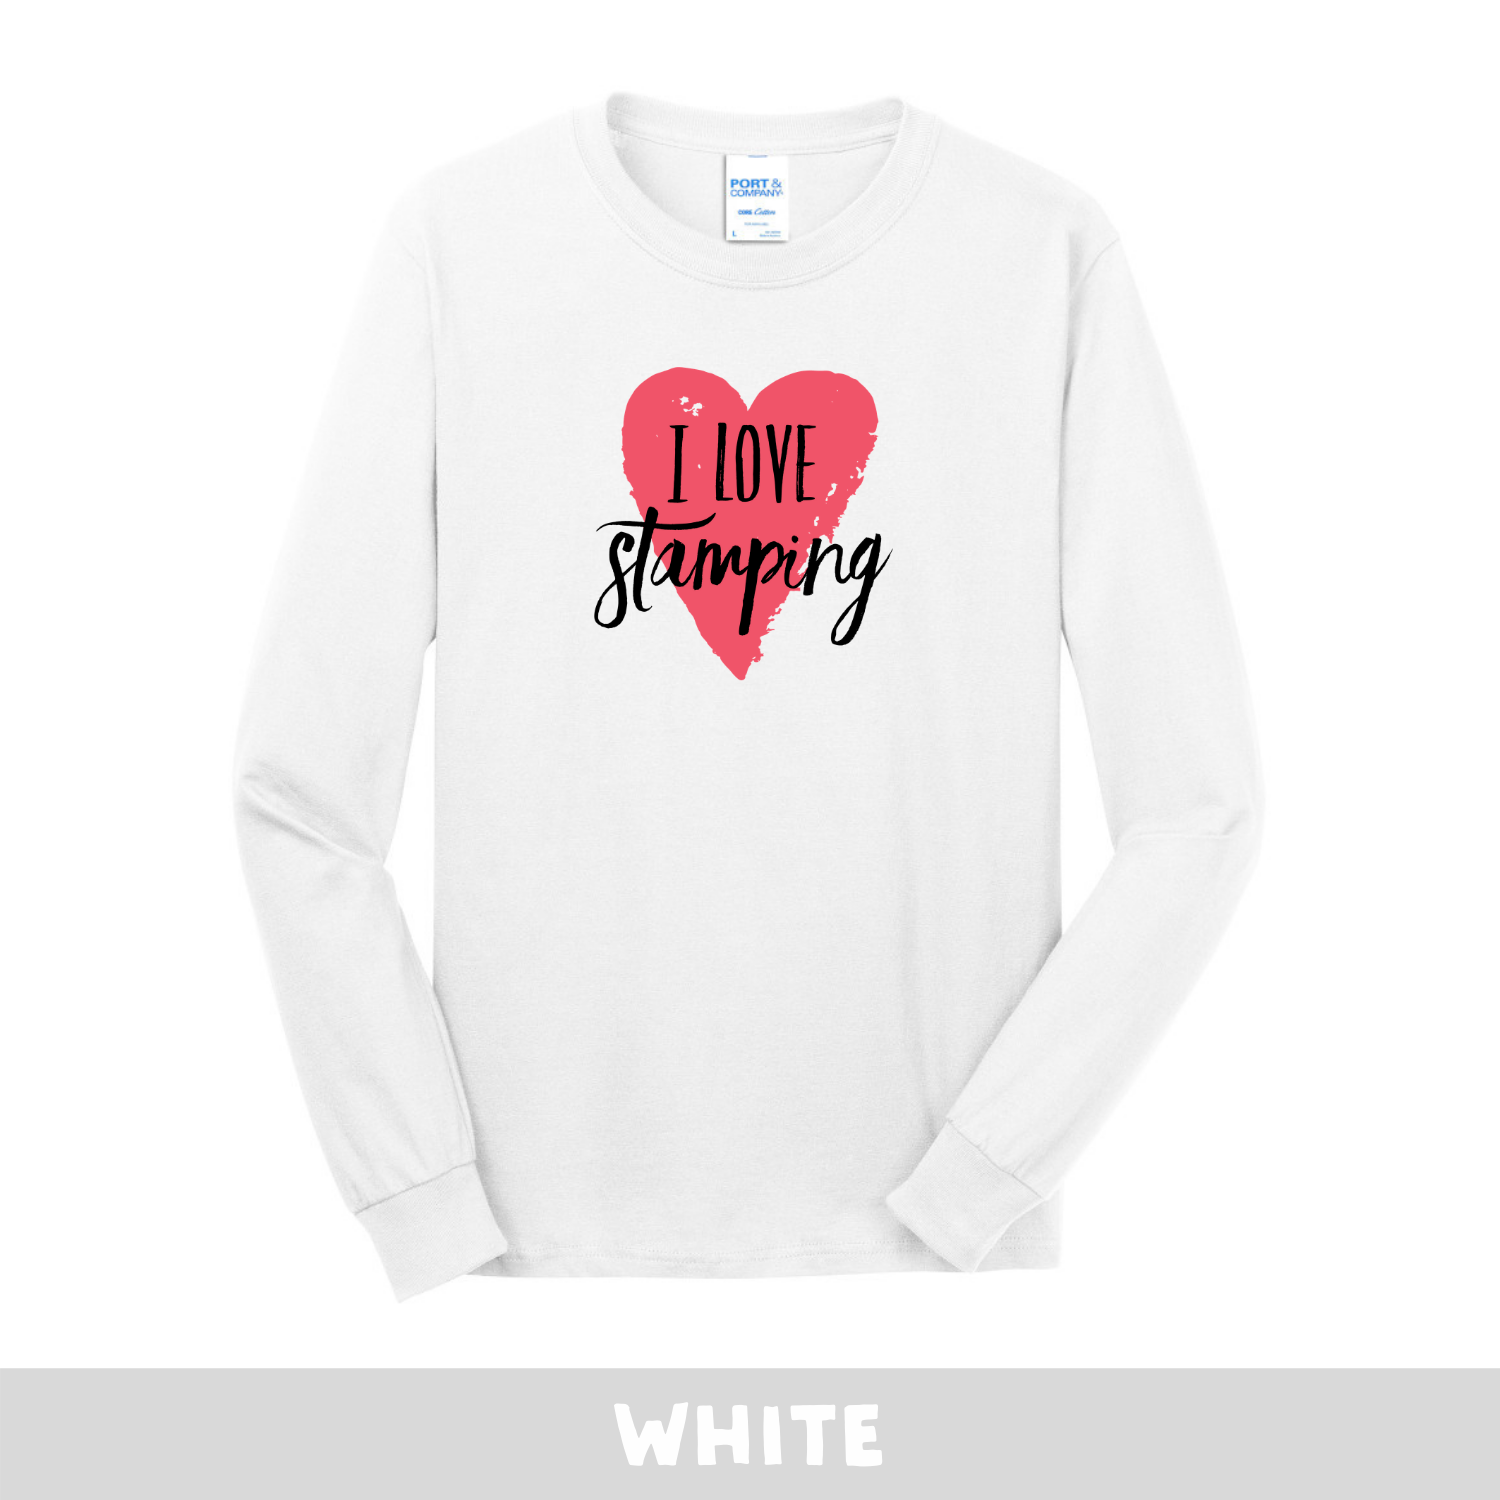 White - Long Sleeve Unisex T-Shirt - I Love Stamping